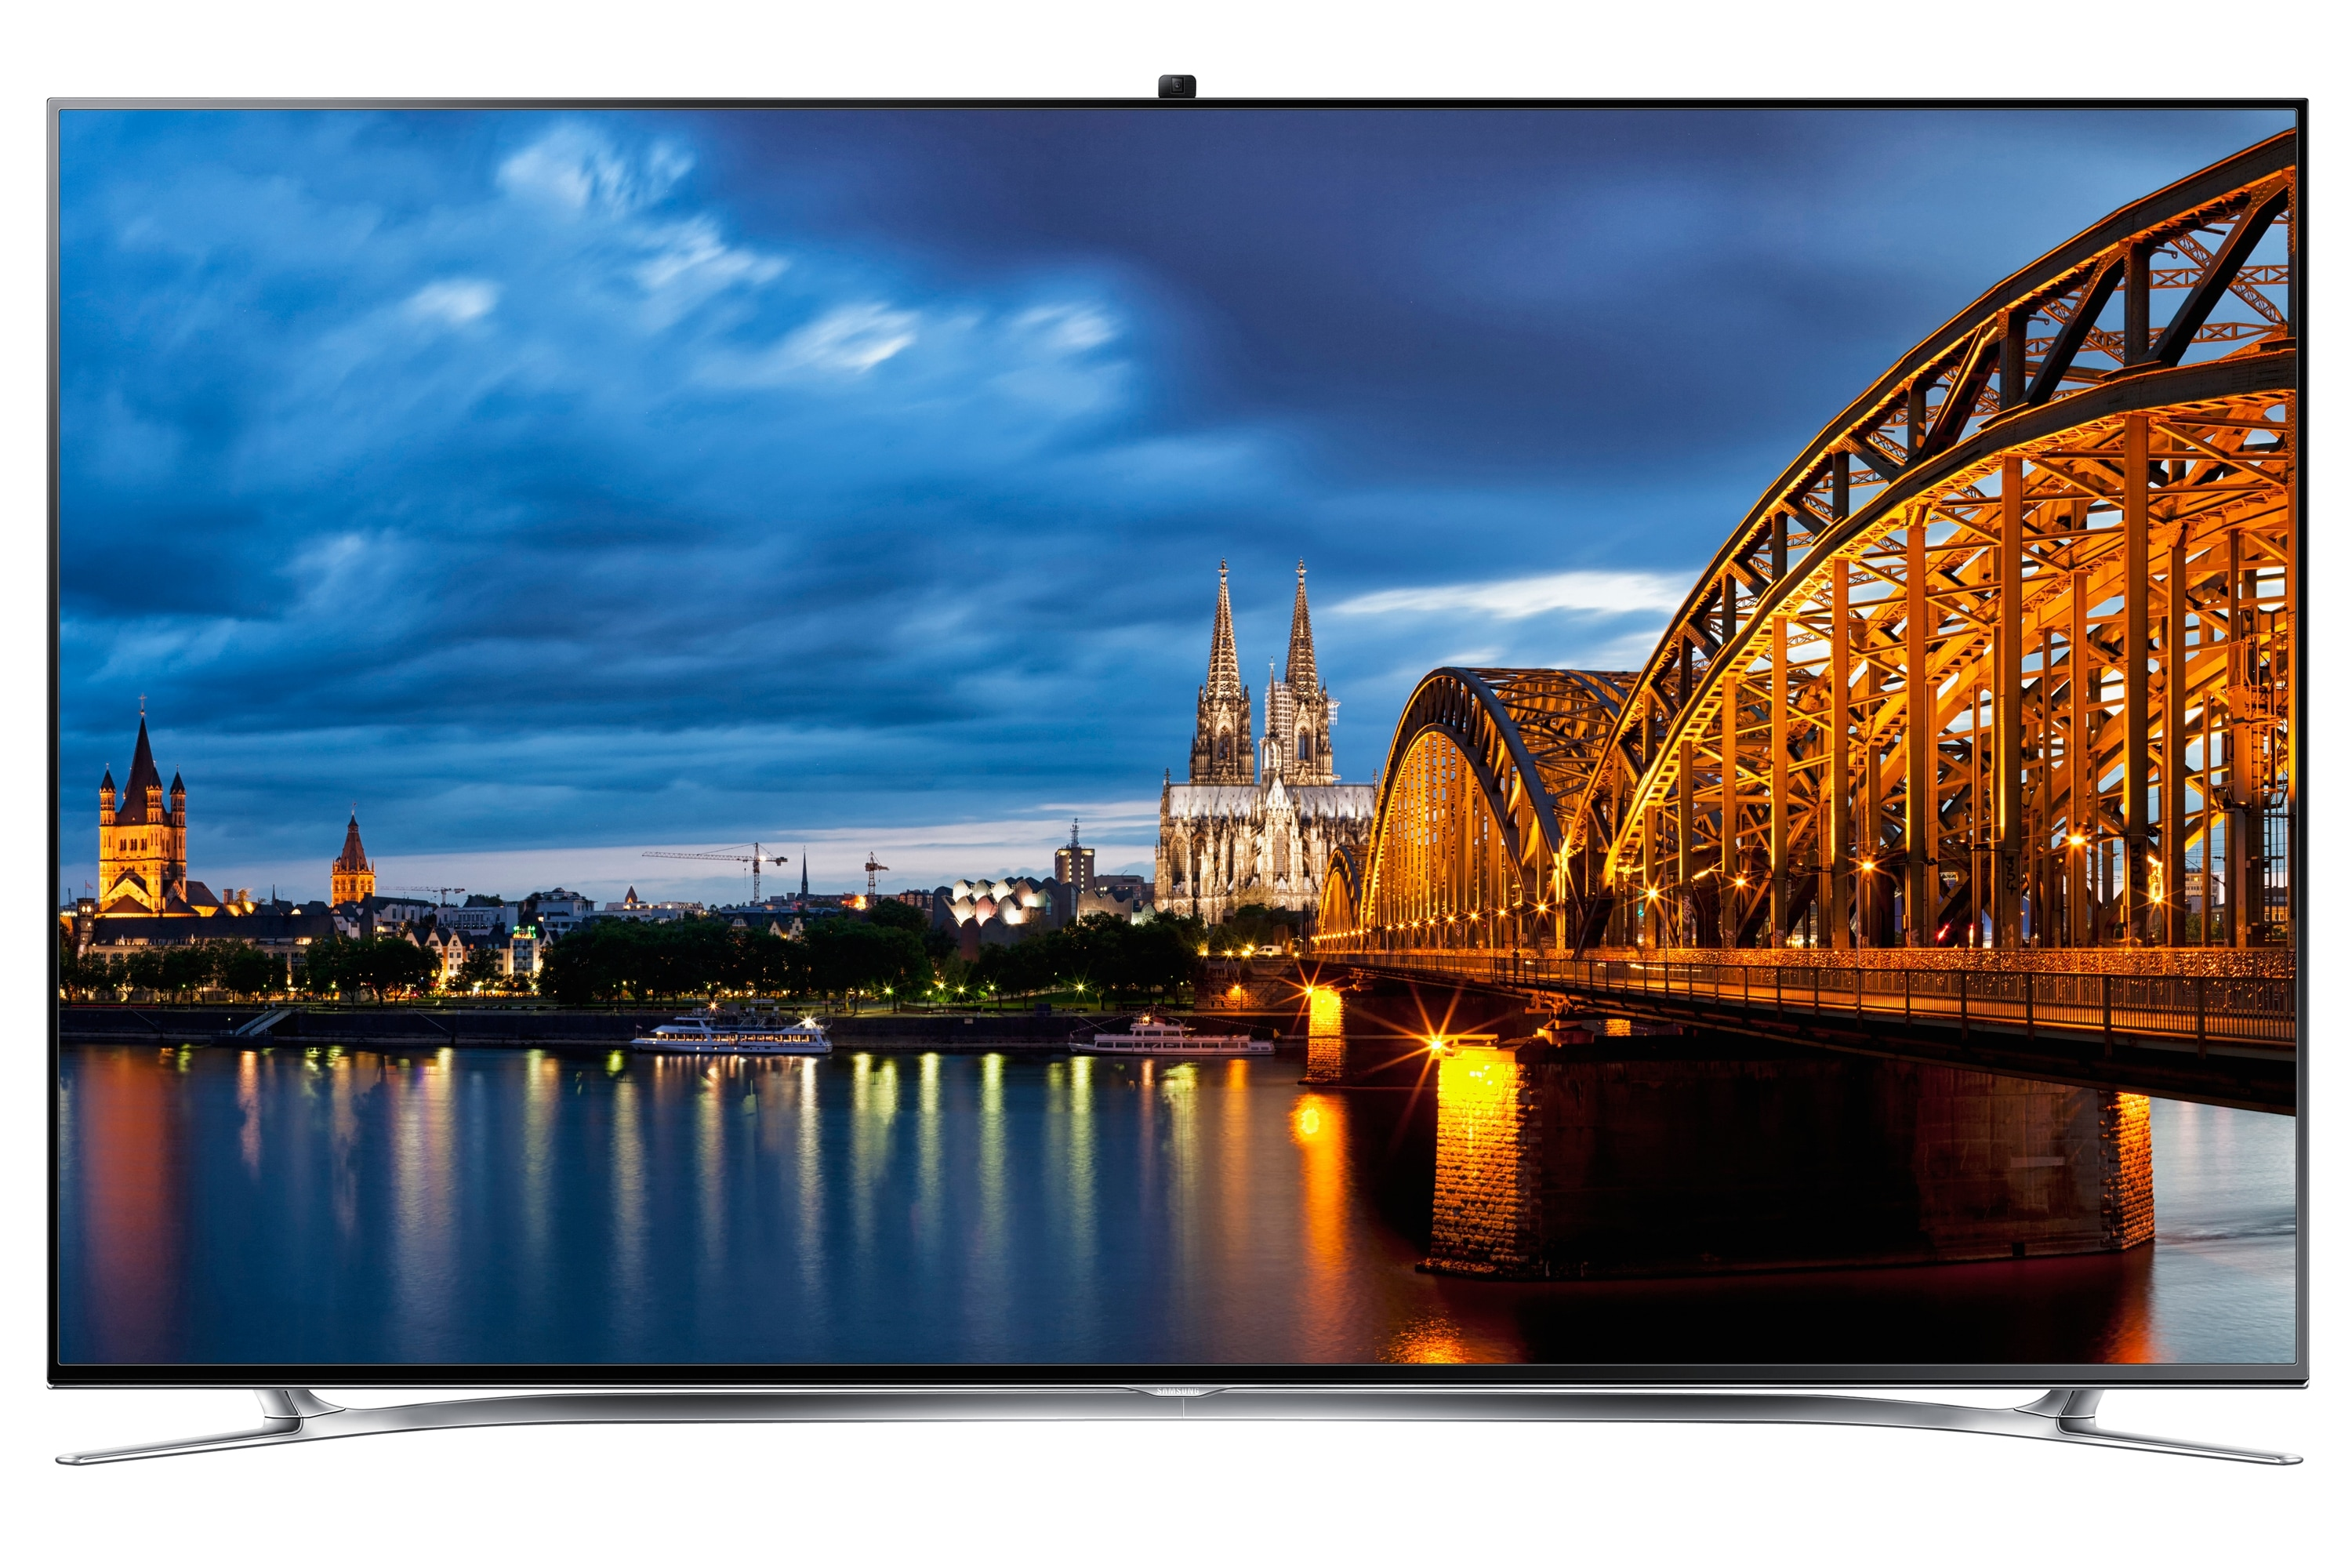 SMART TV 75 F8000 3D Full HD LED